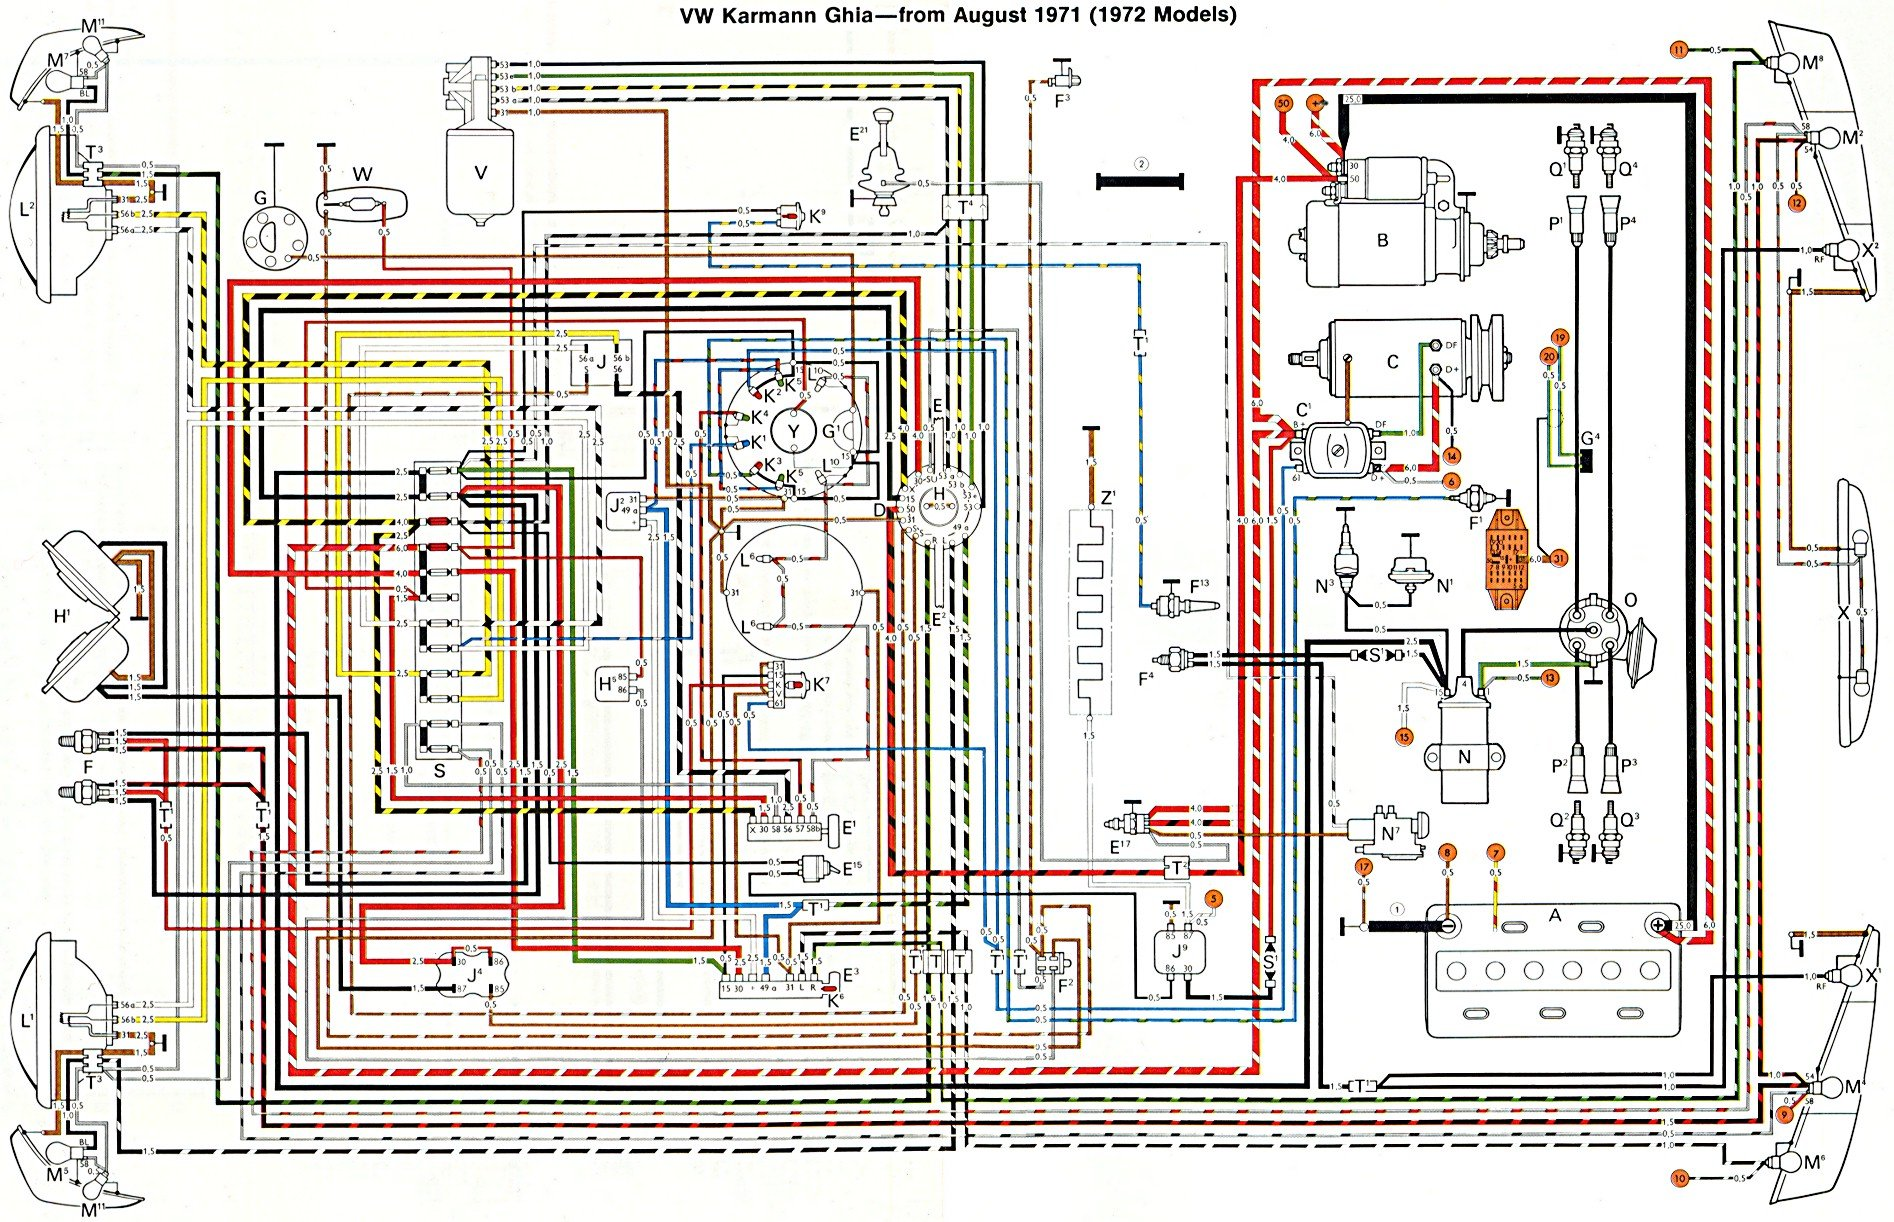 TheSamba.com :: Karmann Ghia Wiring Diagrams on